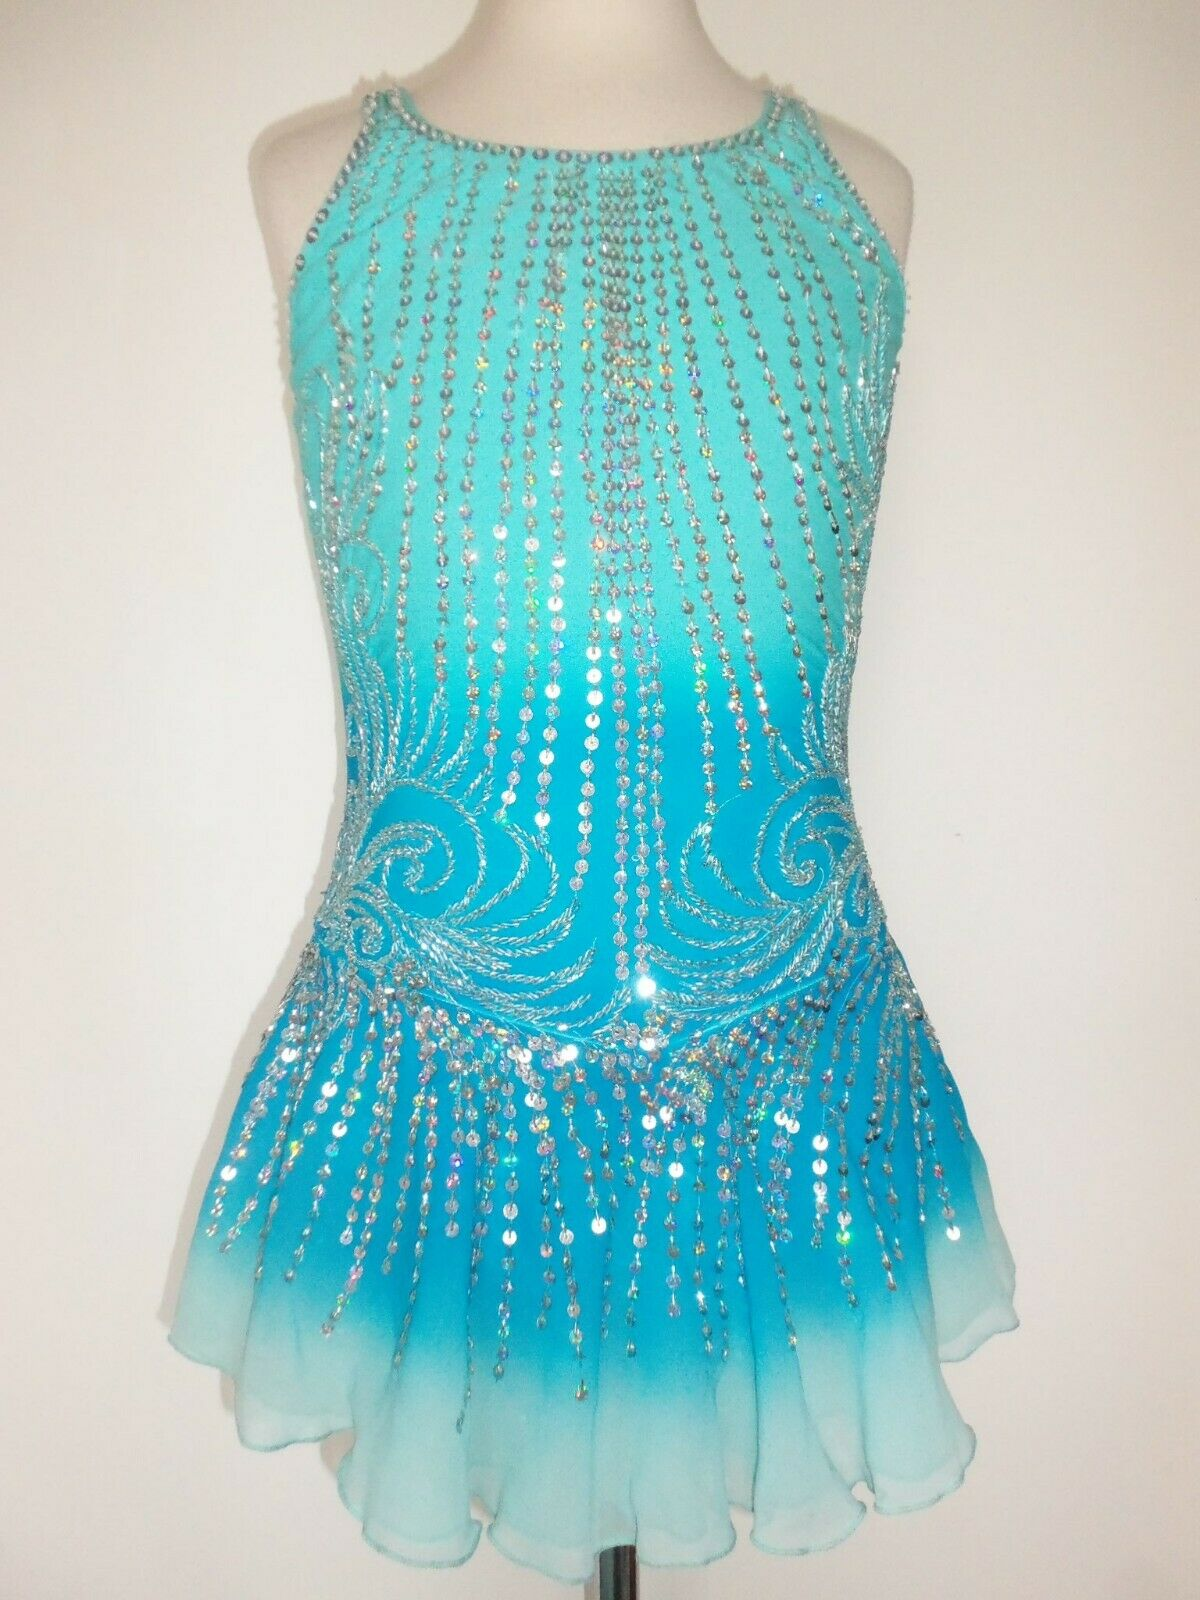 SALE  NEW FIGURE ICE SKATING BATON TWIRLING DRESS COSTUME GIRL S